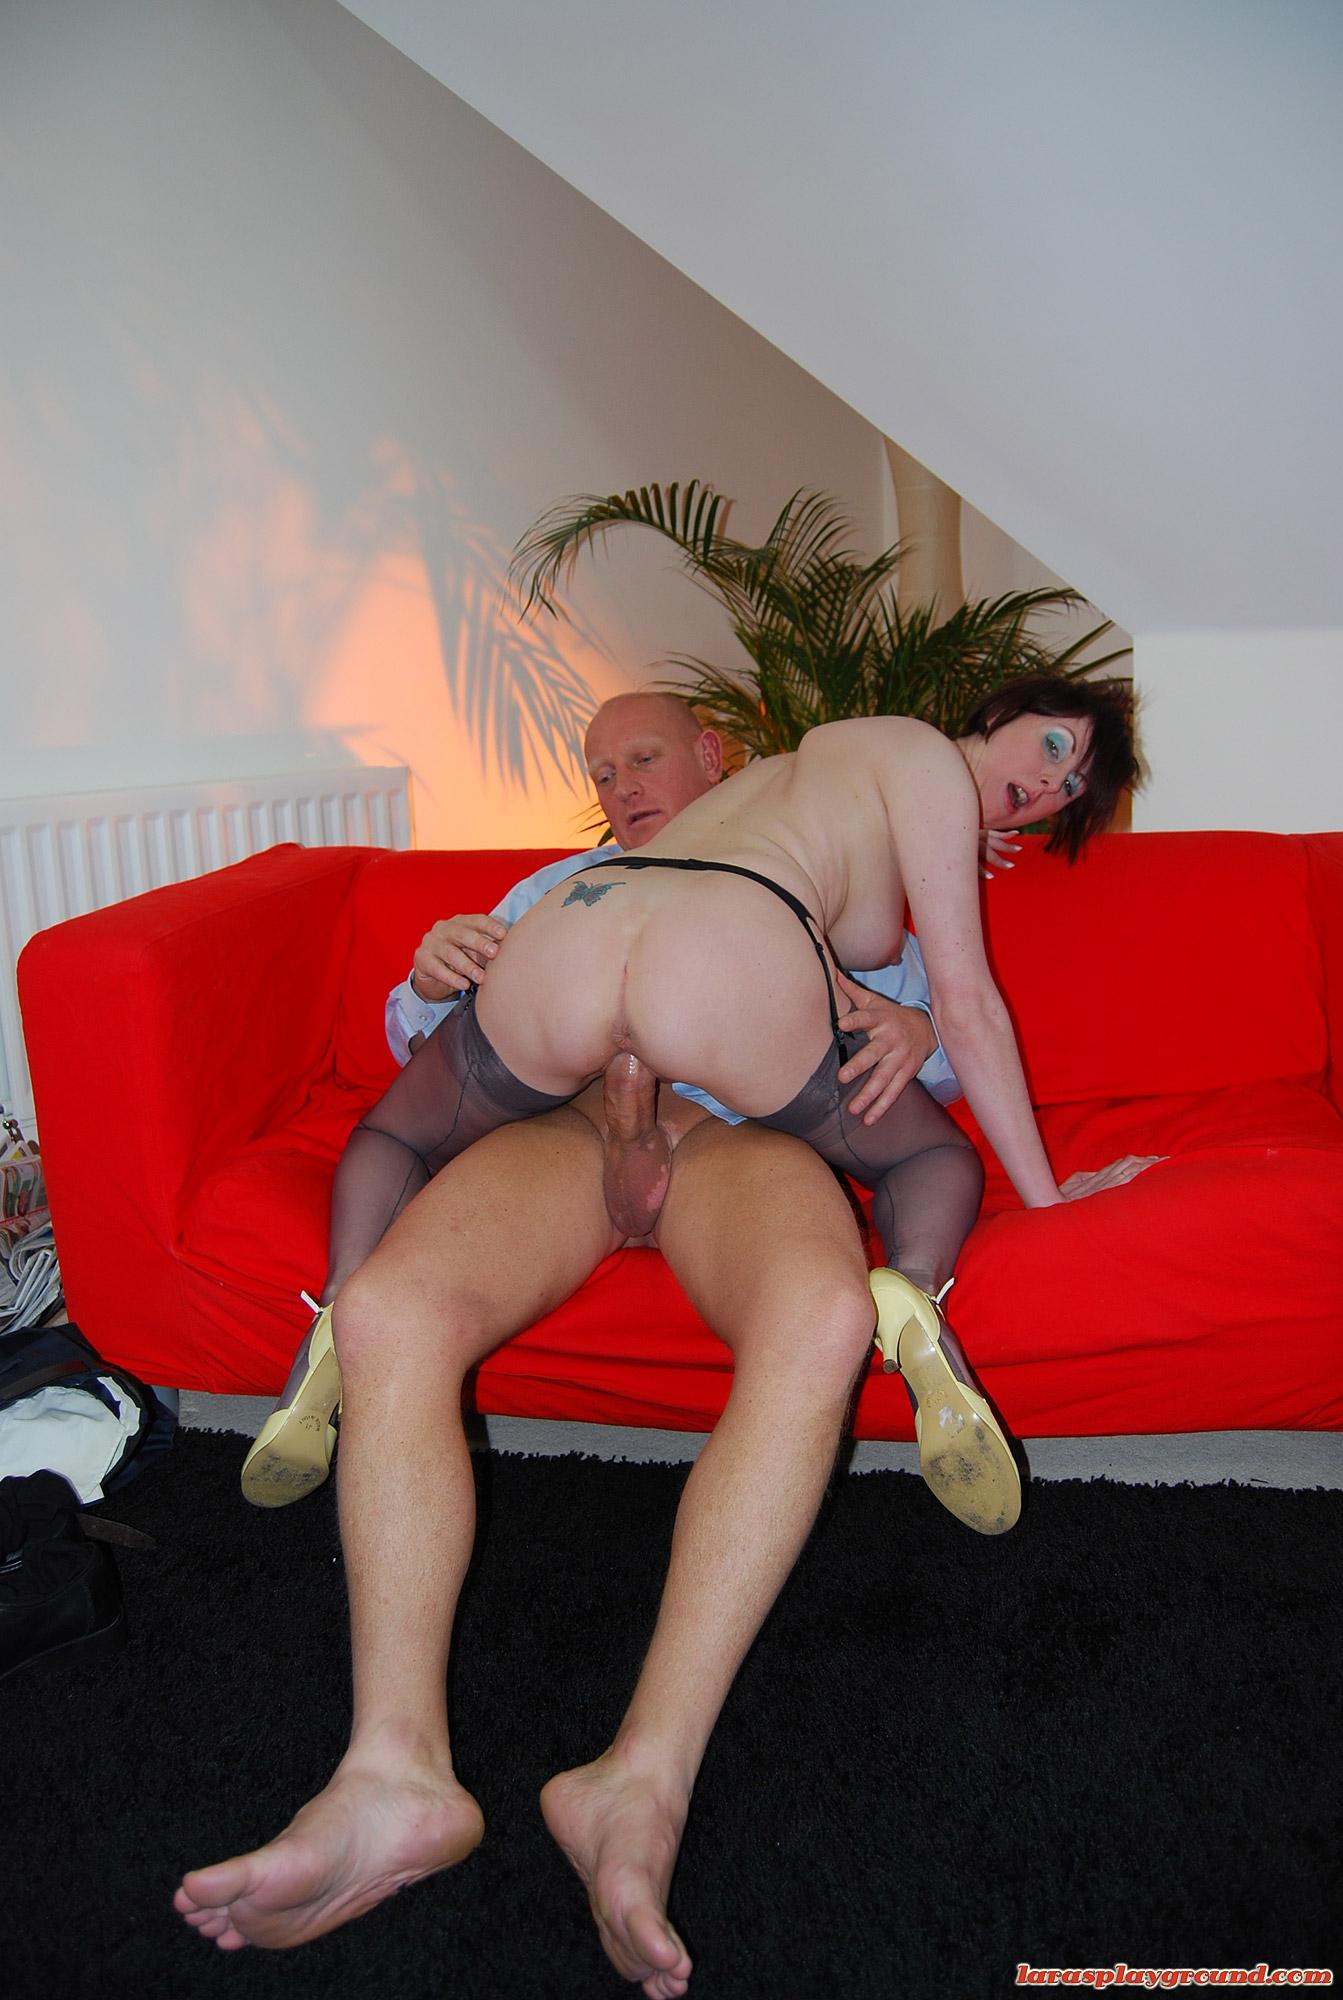 Huge cock in young pussy (11/15)